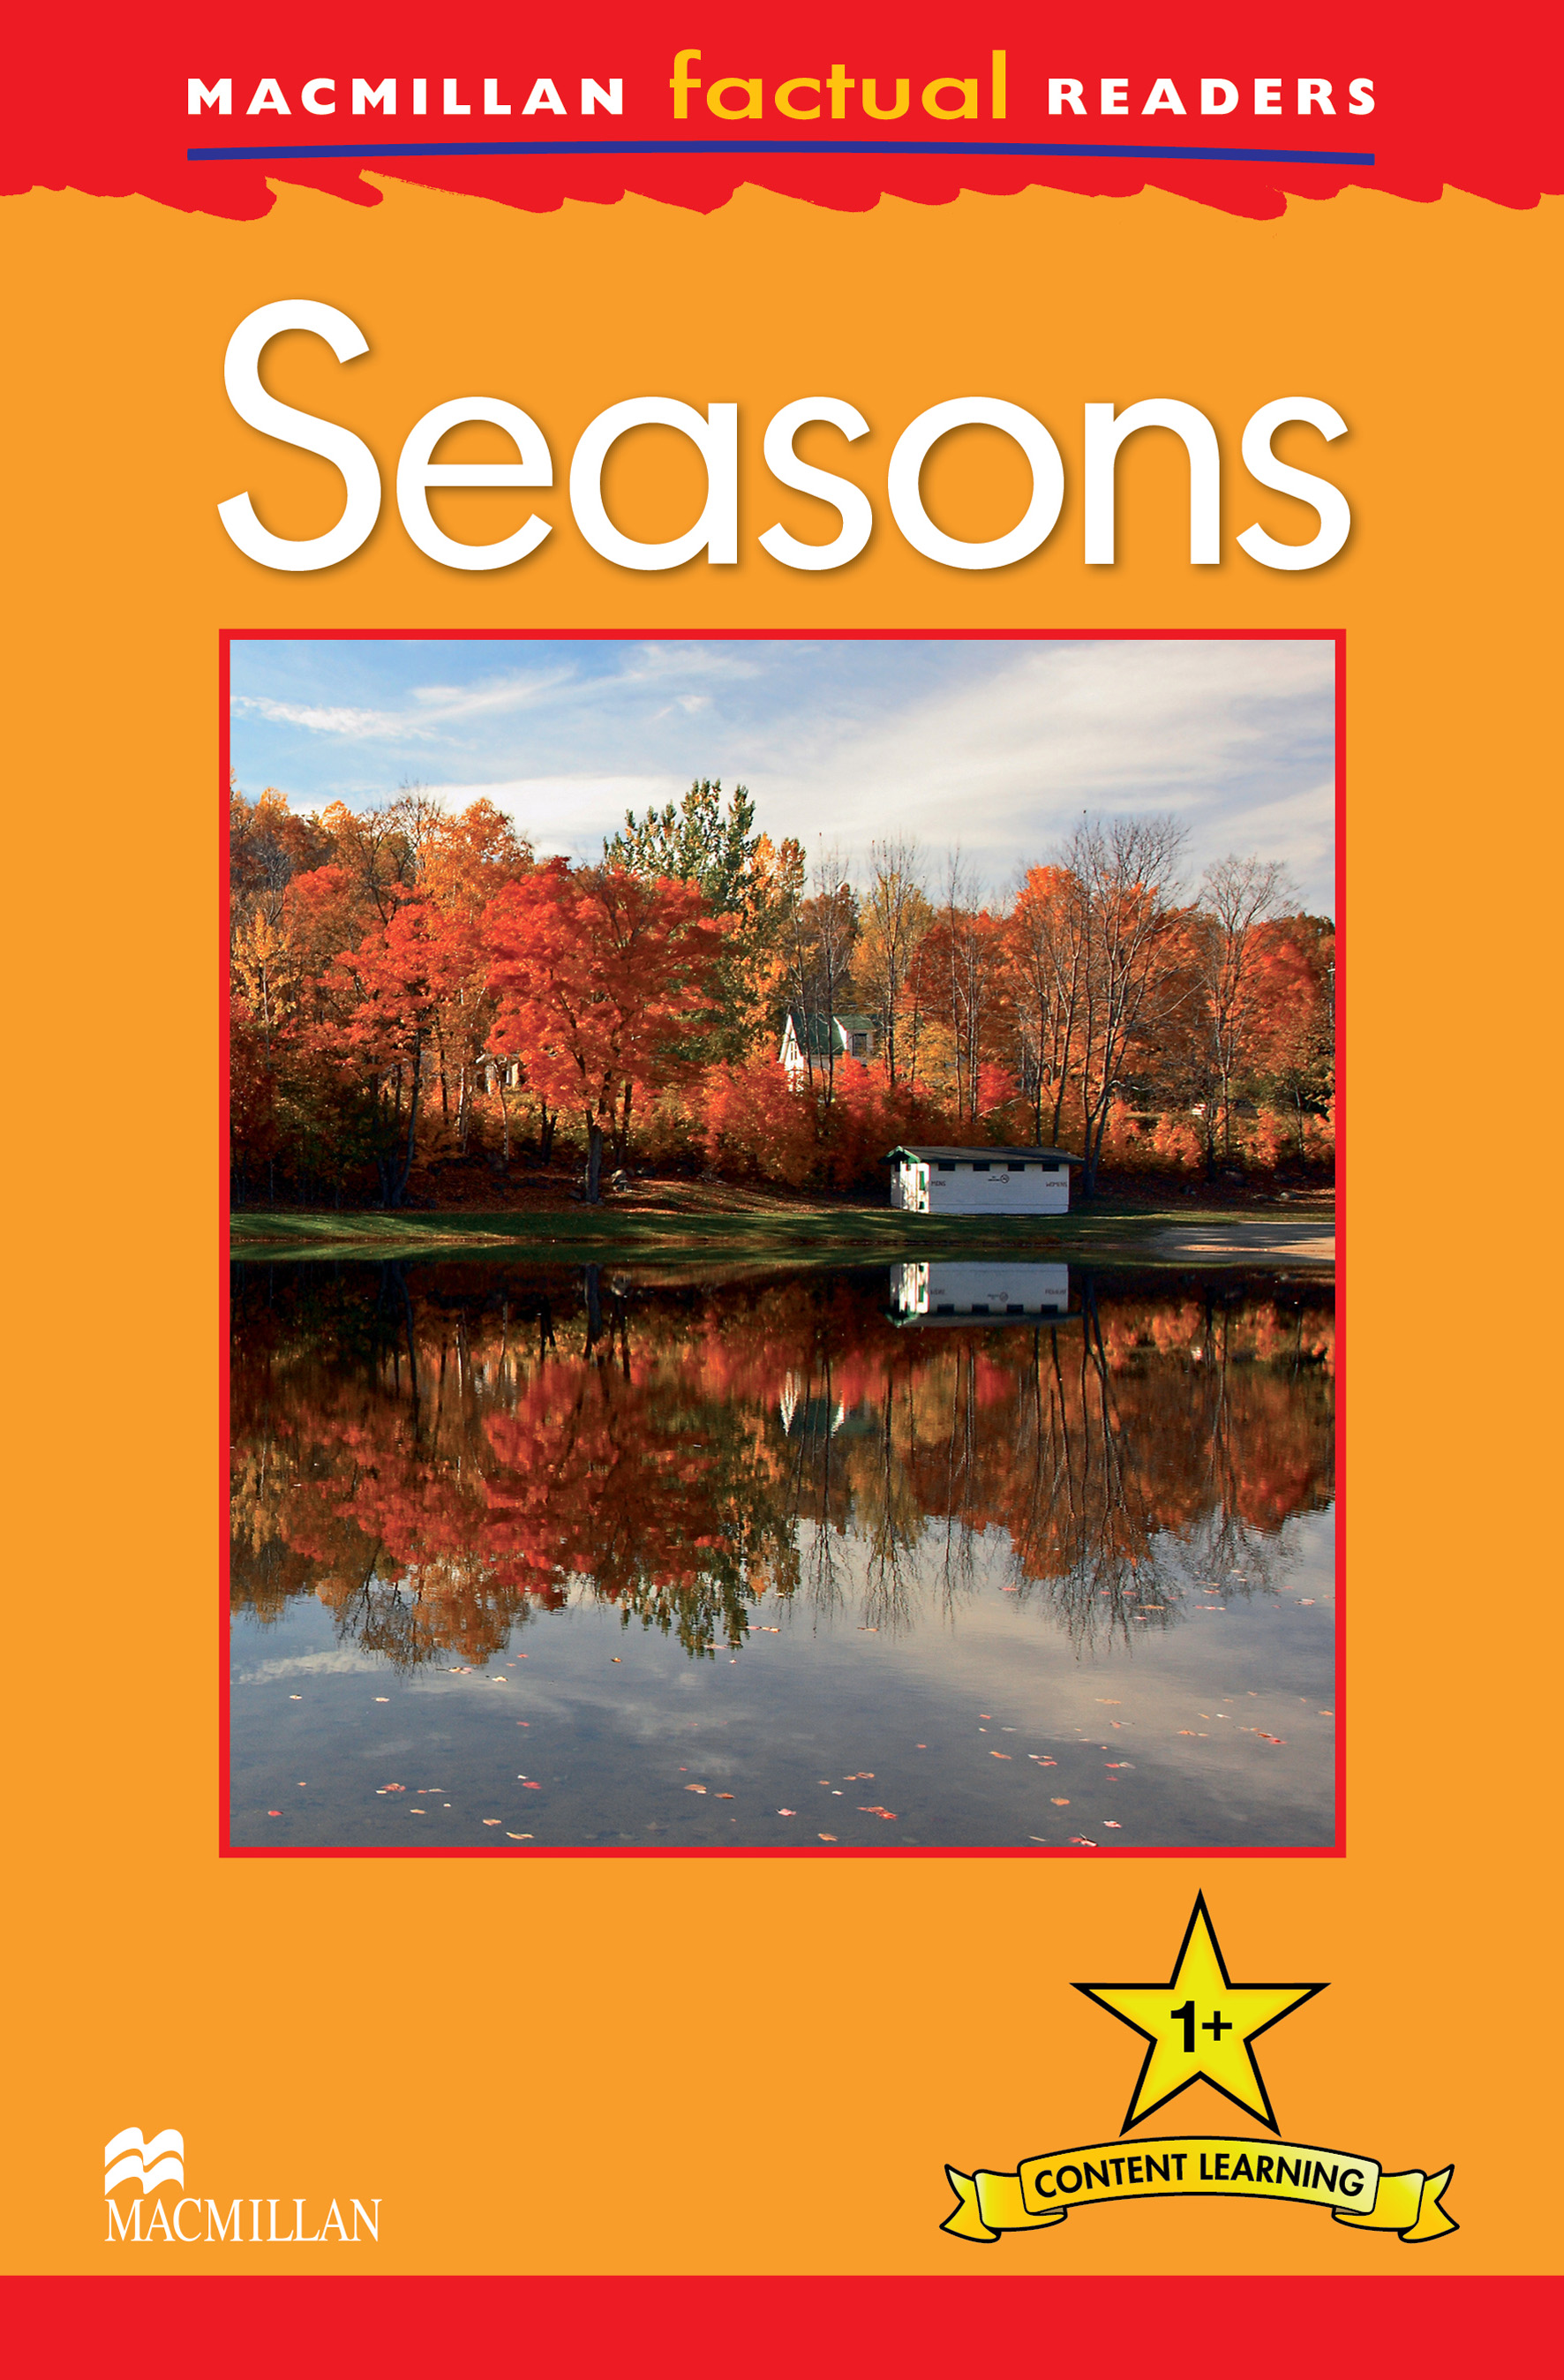 Macmillan Factual Readers: Seasons